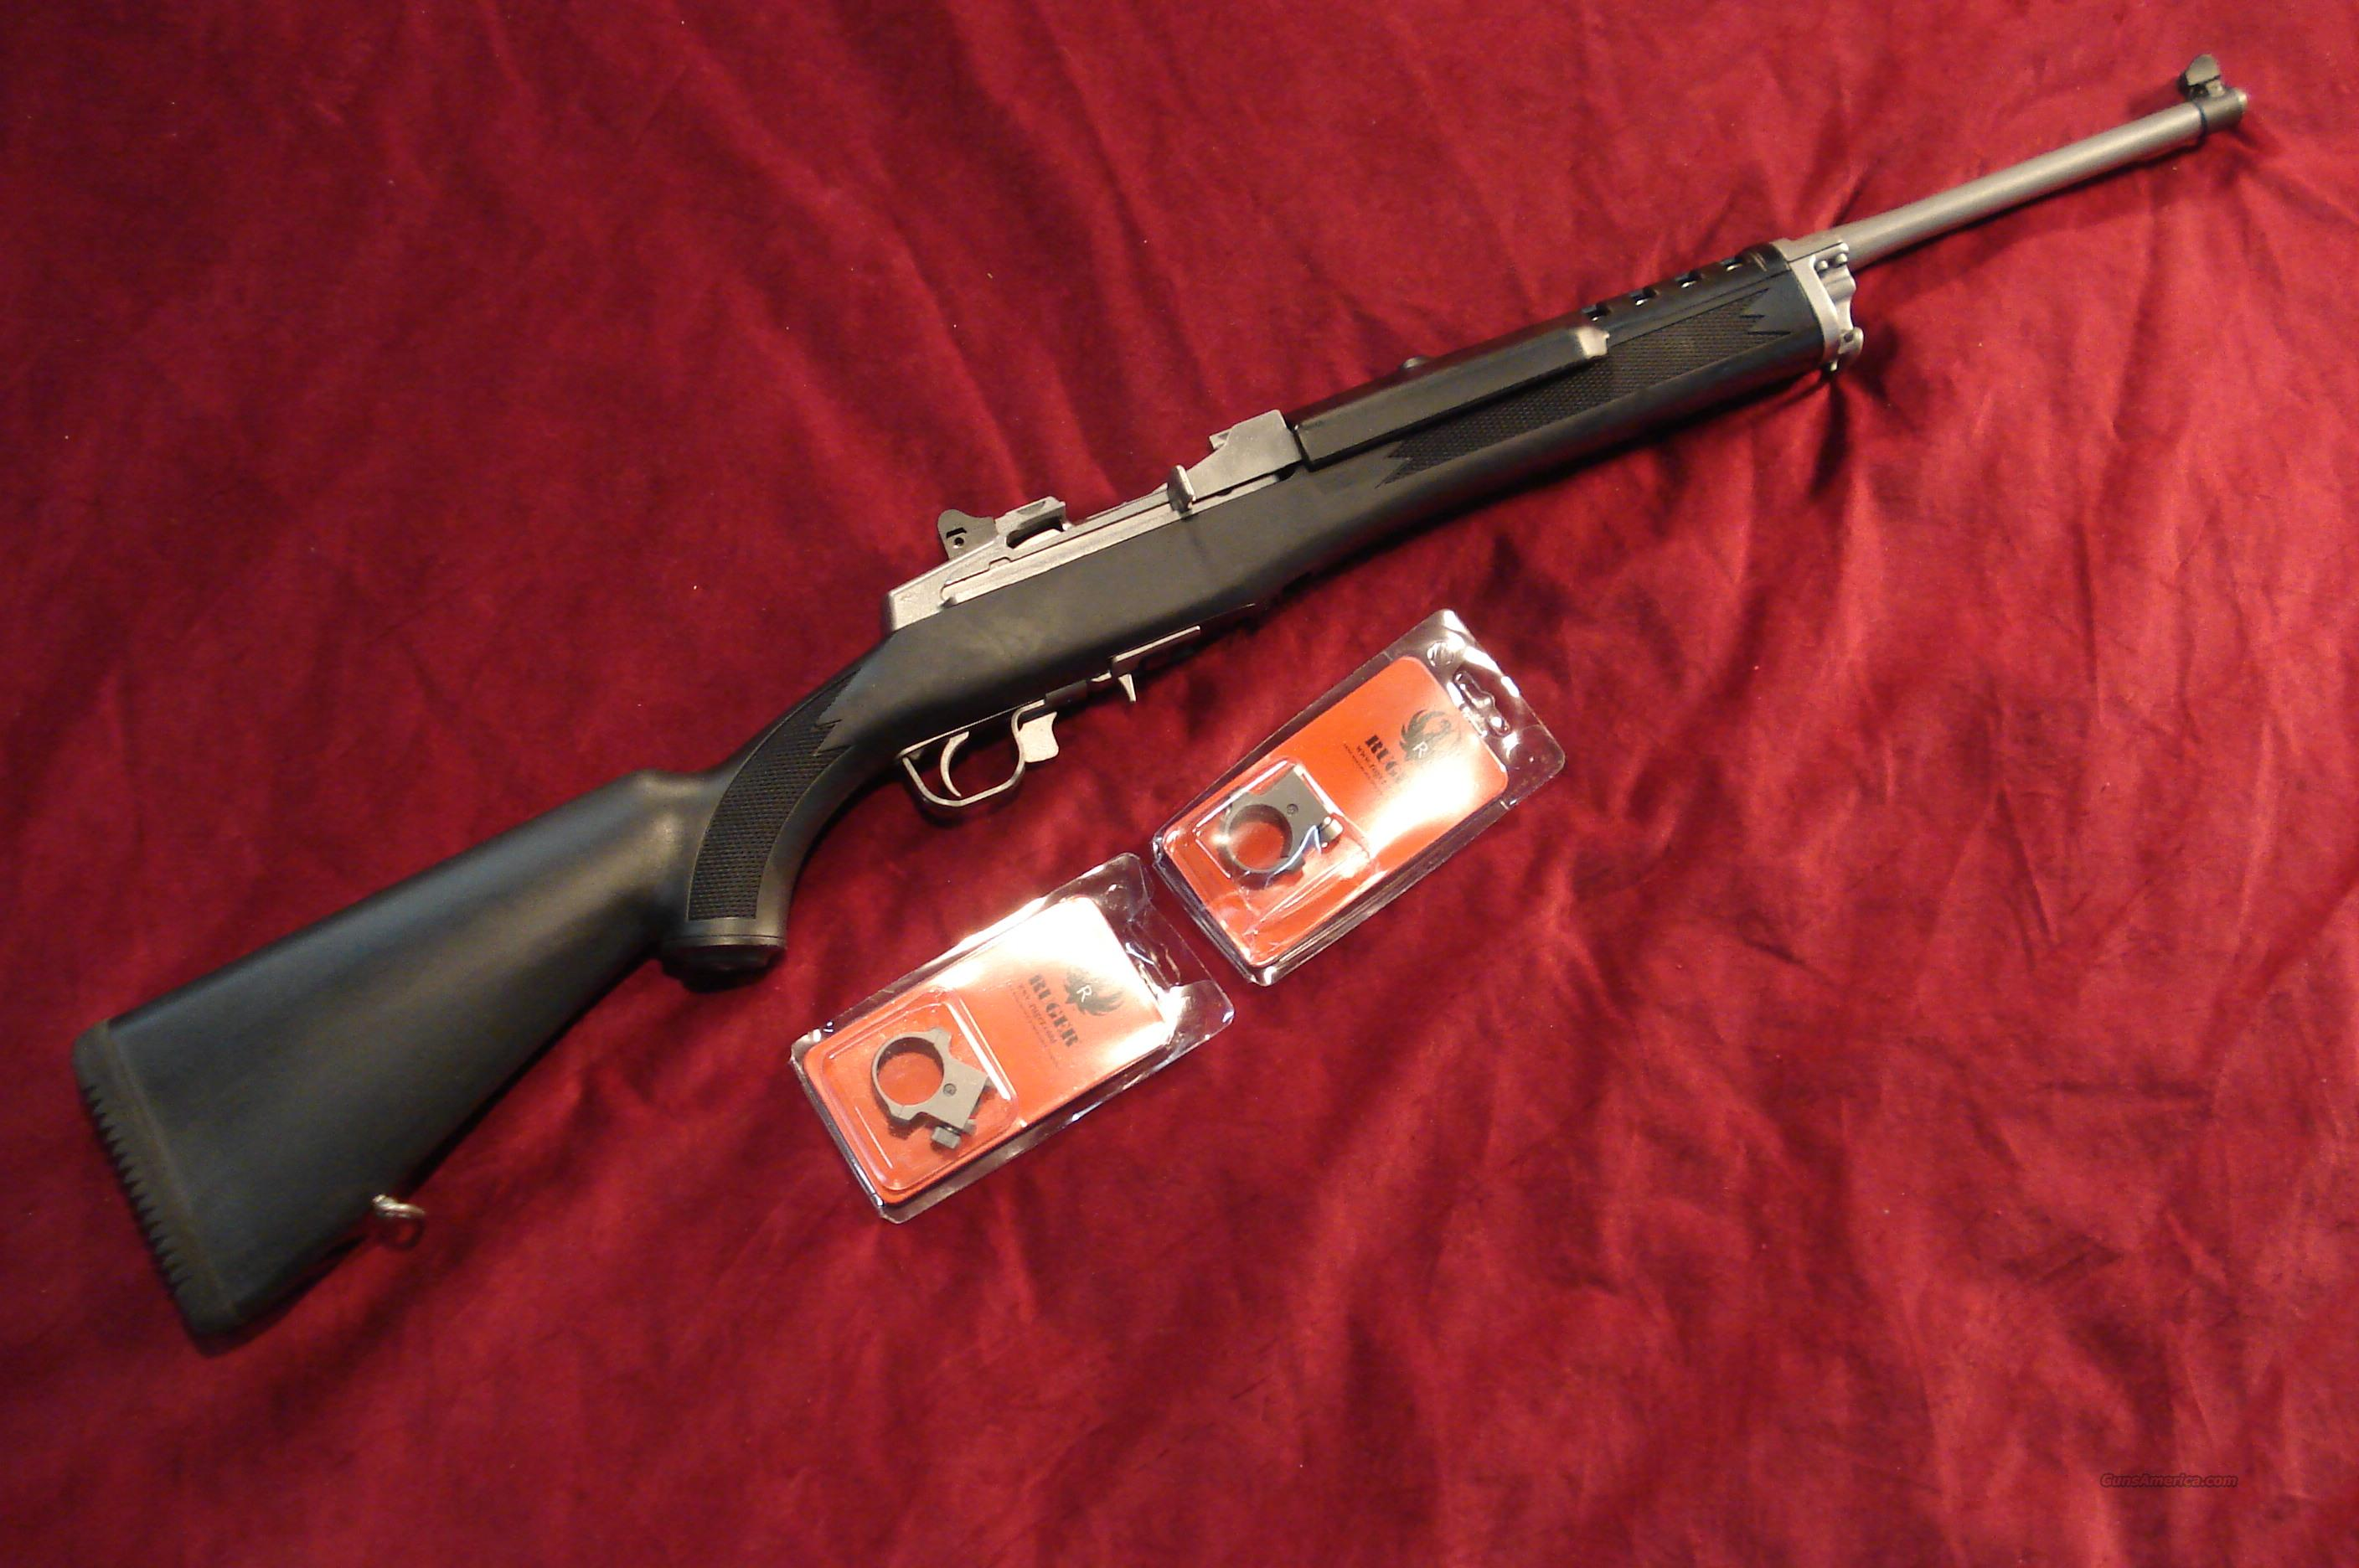 RUGER ALL WEATHER MINI 14 6.8REM. SPL. STAINLESS RANCH  NEW  Guns > Rifles > Ruger Rifles > Mini-14 Type